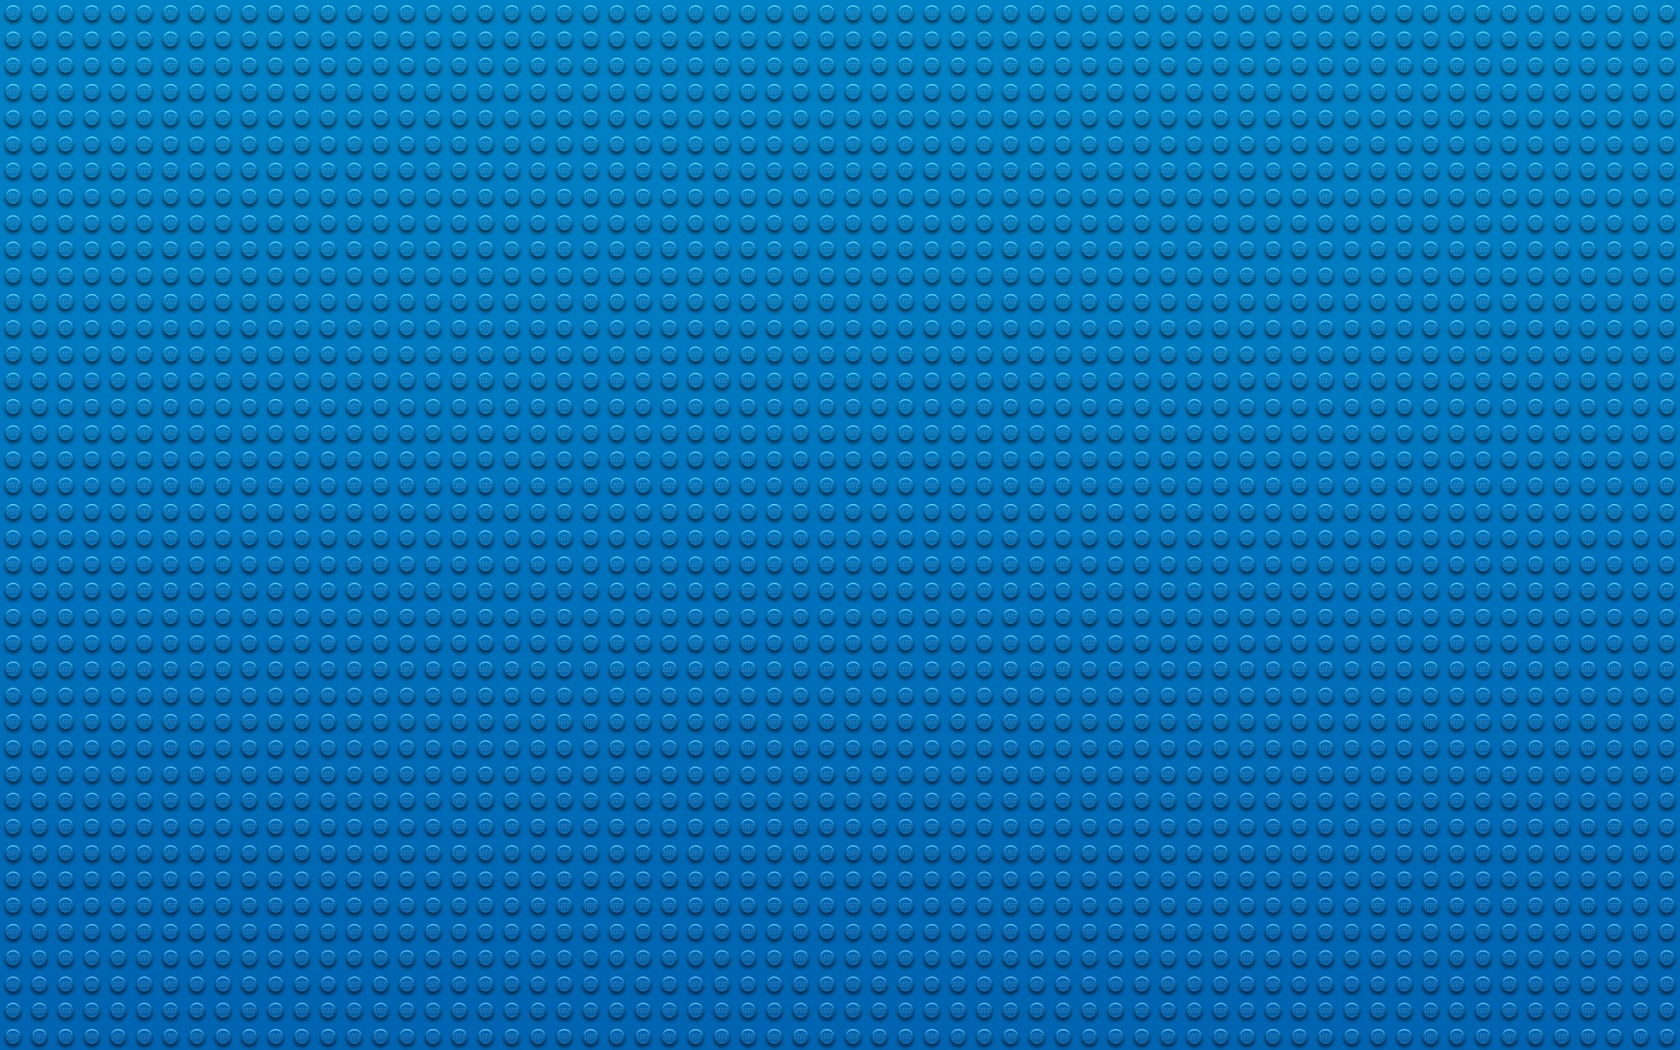 14424 textura azul wallpaper - photo #8